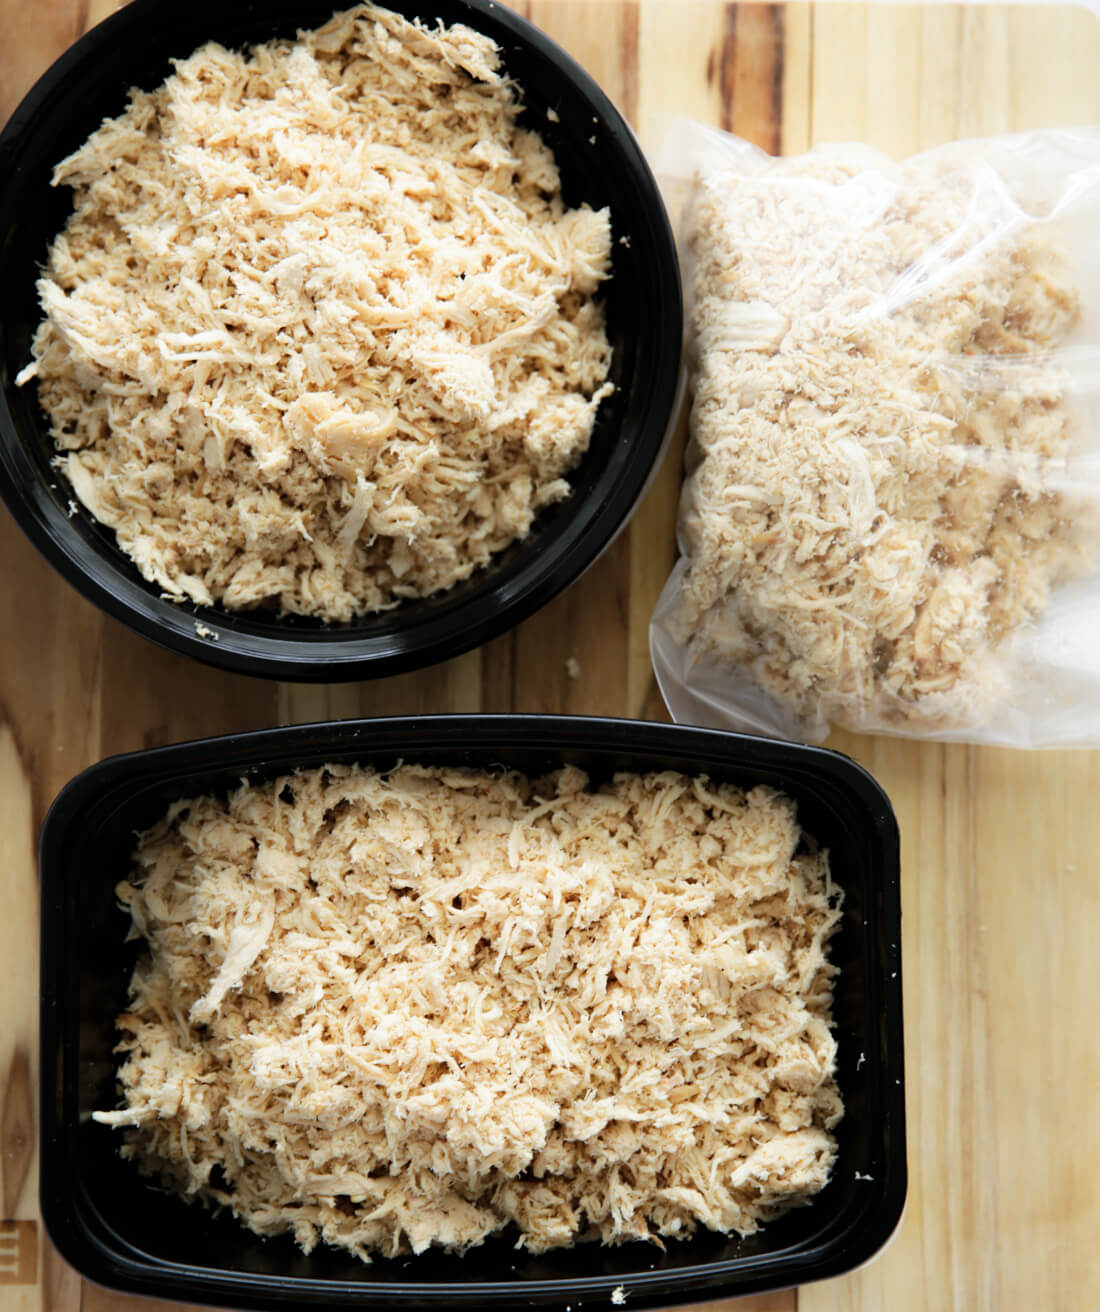 Putting shredded chicken into containers